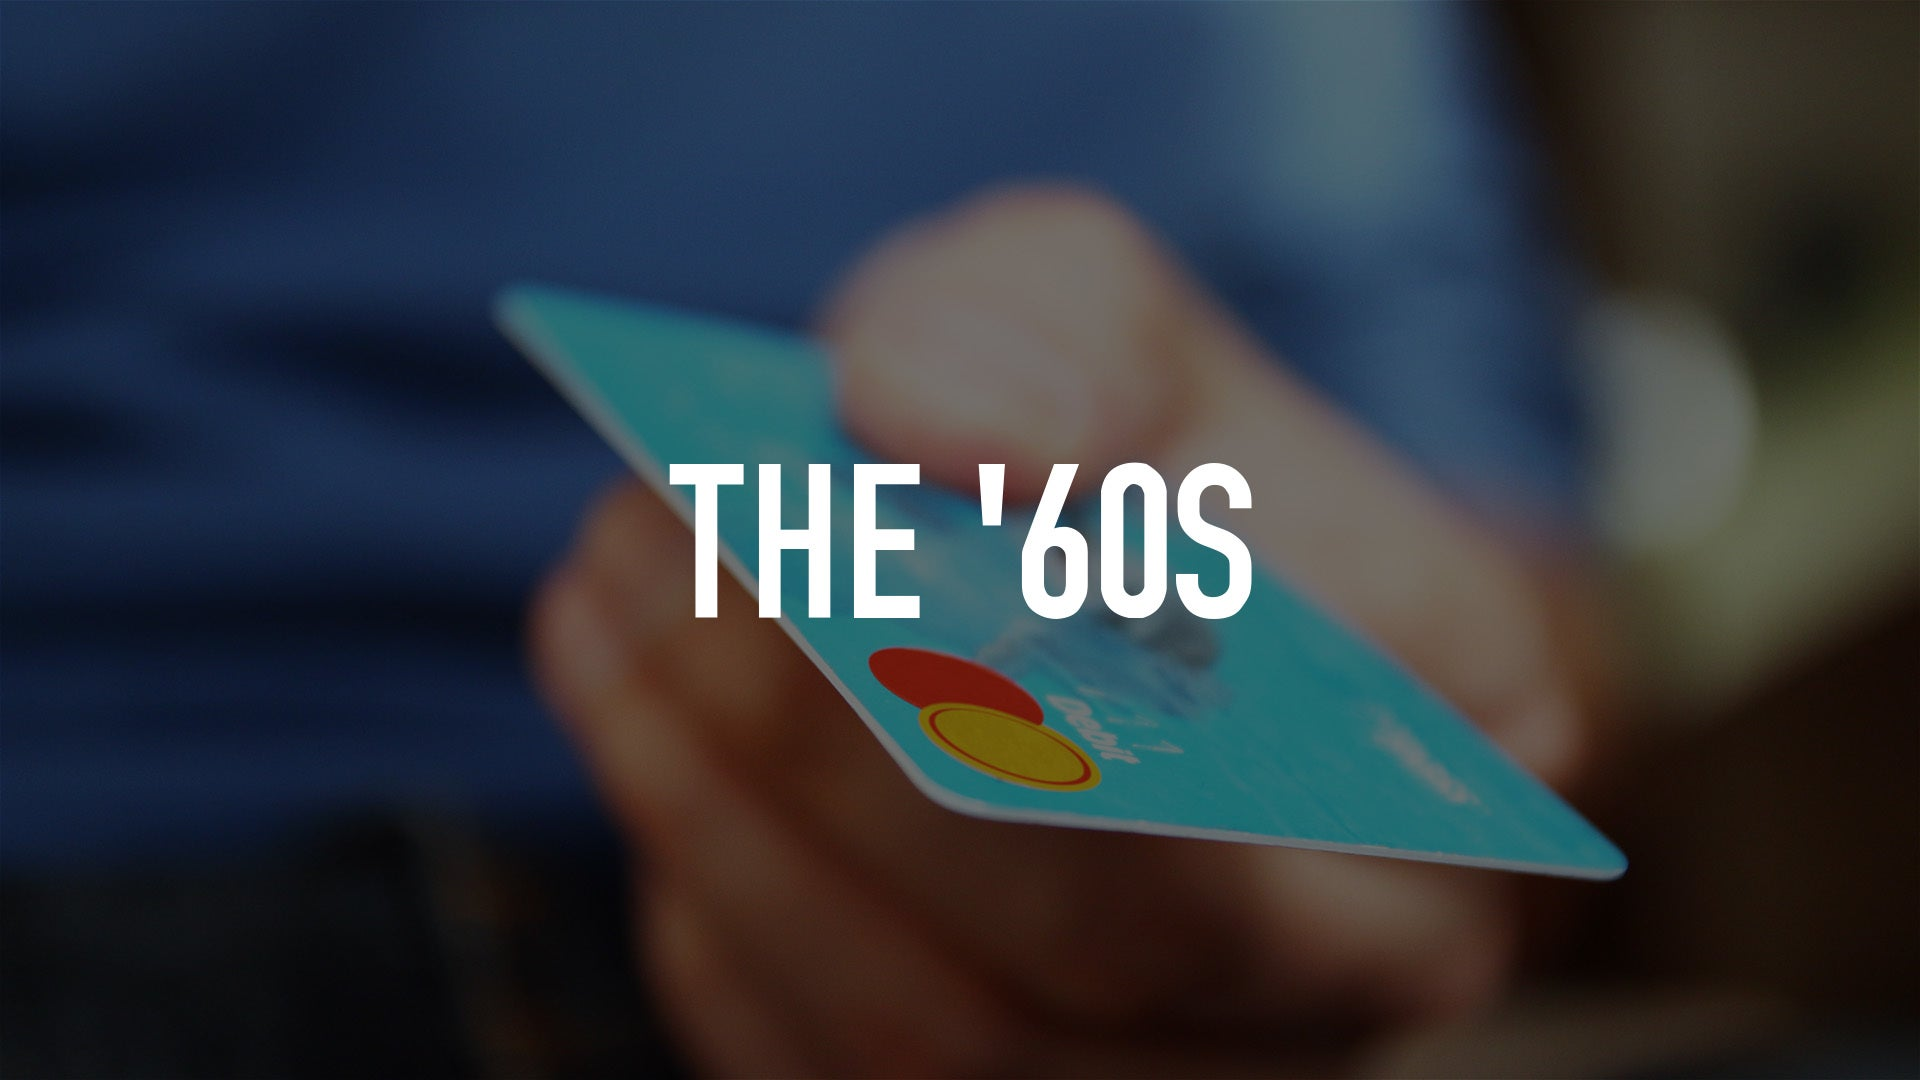 The '60s